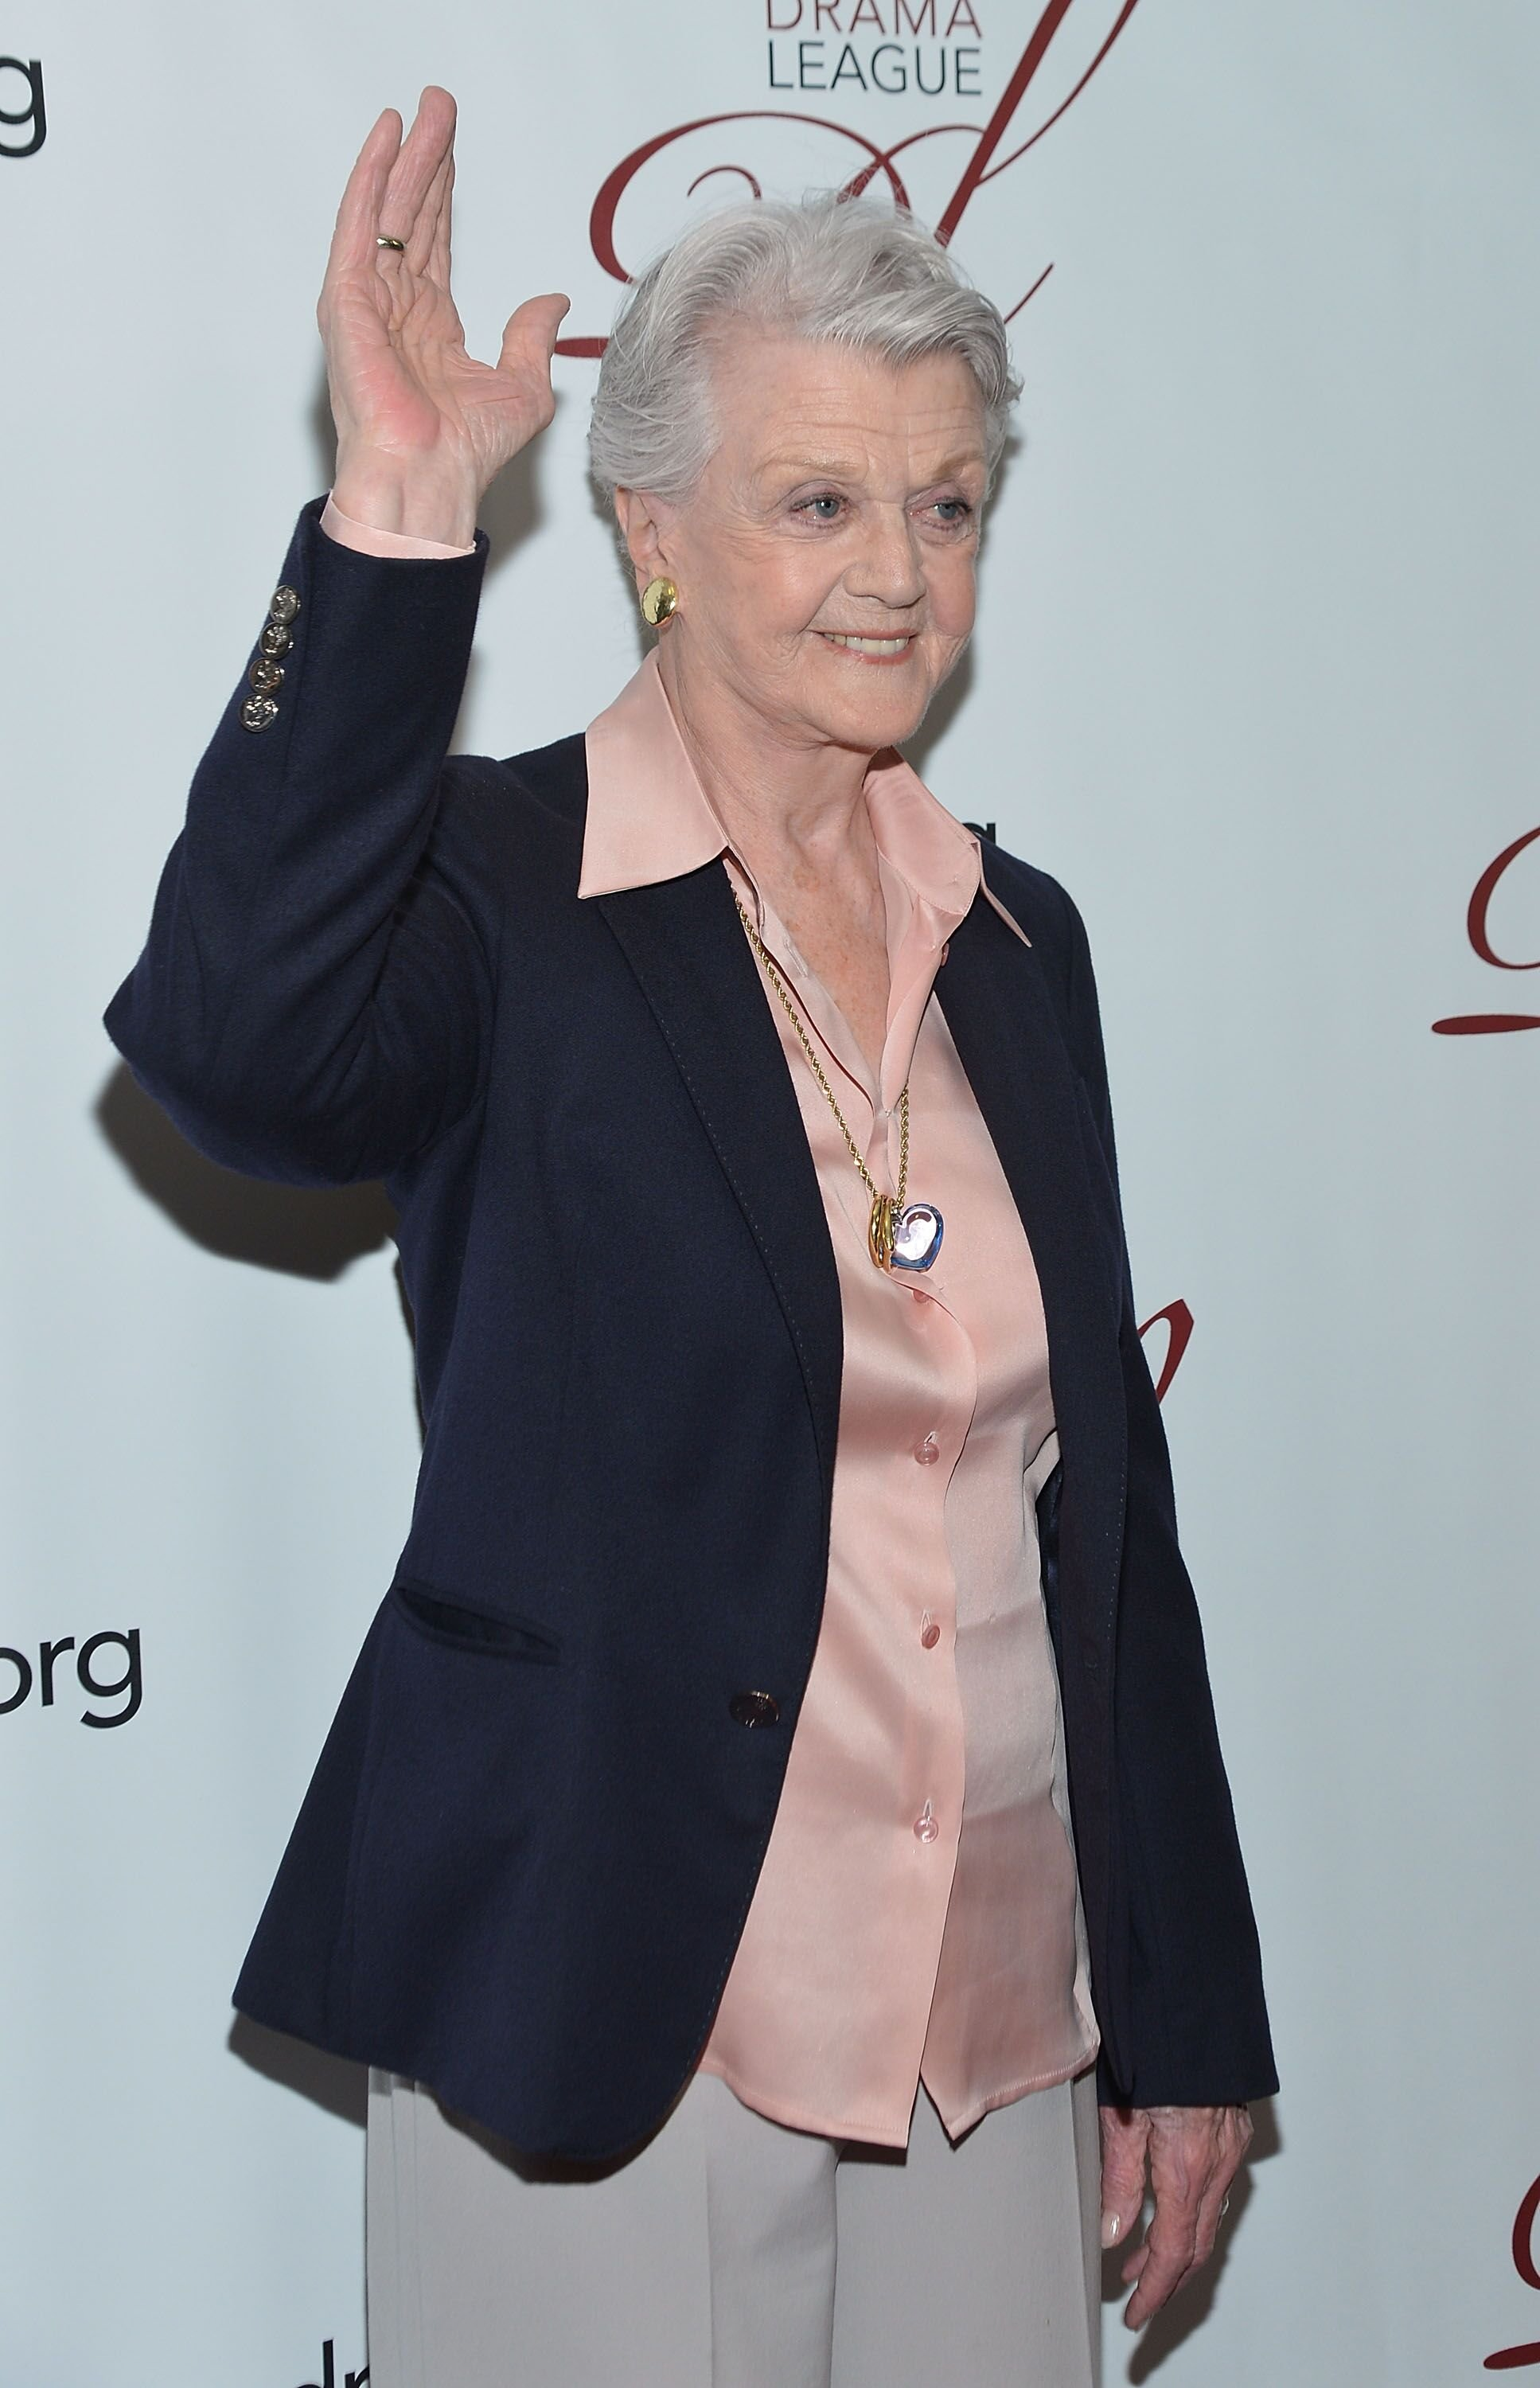 L'actrice Angela Lansbury assiste à la cérémonie annuelle de remise des prix de la Drama League à New York. | Photo : GettyImage